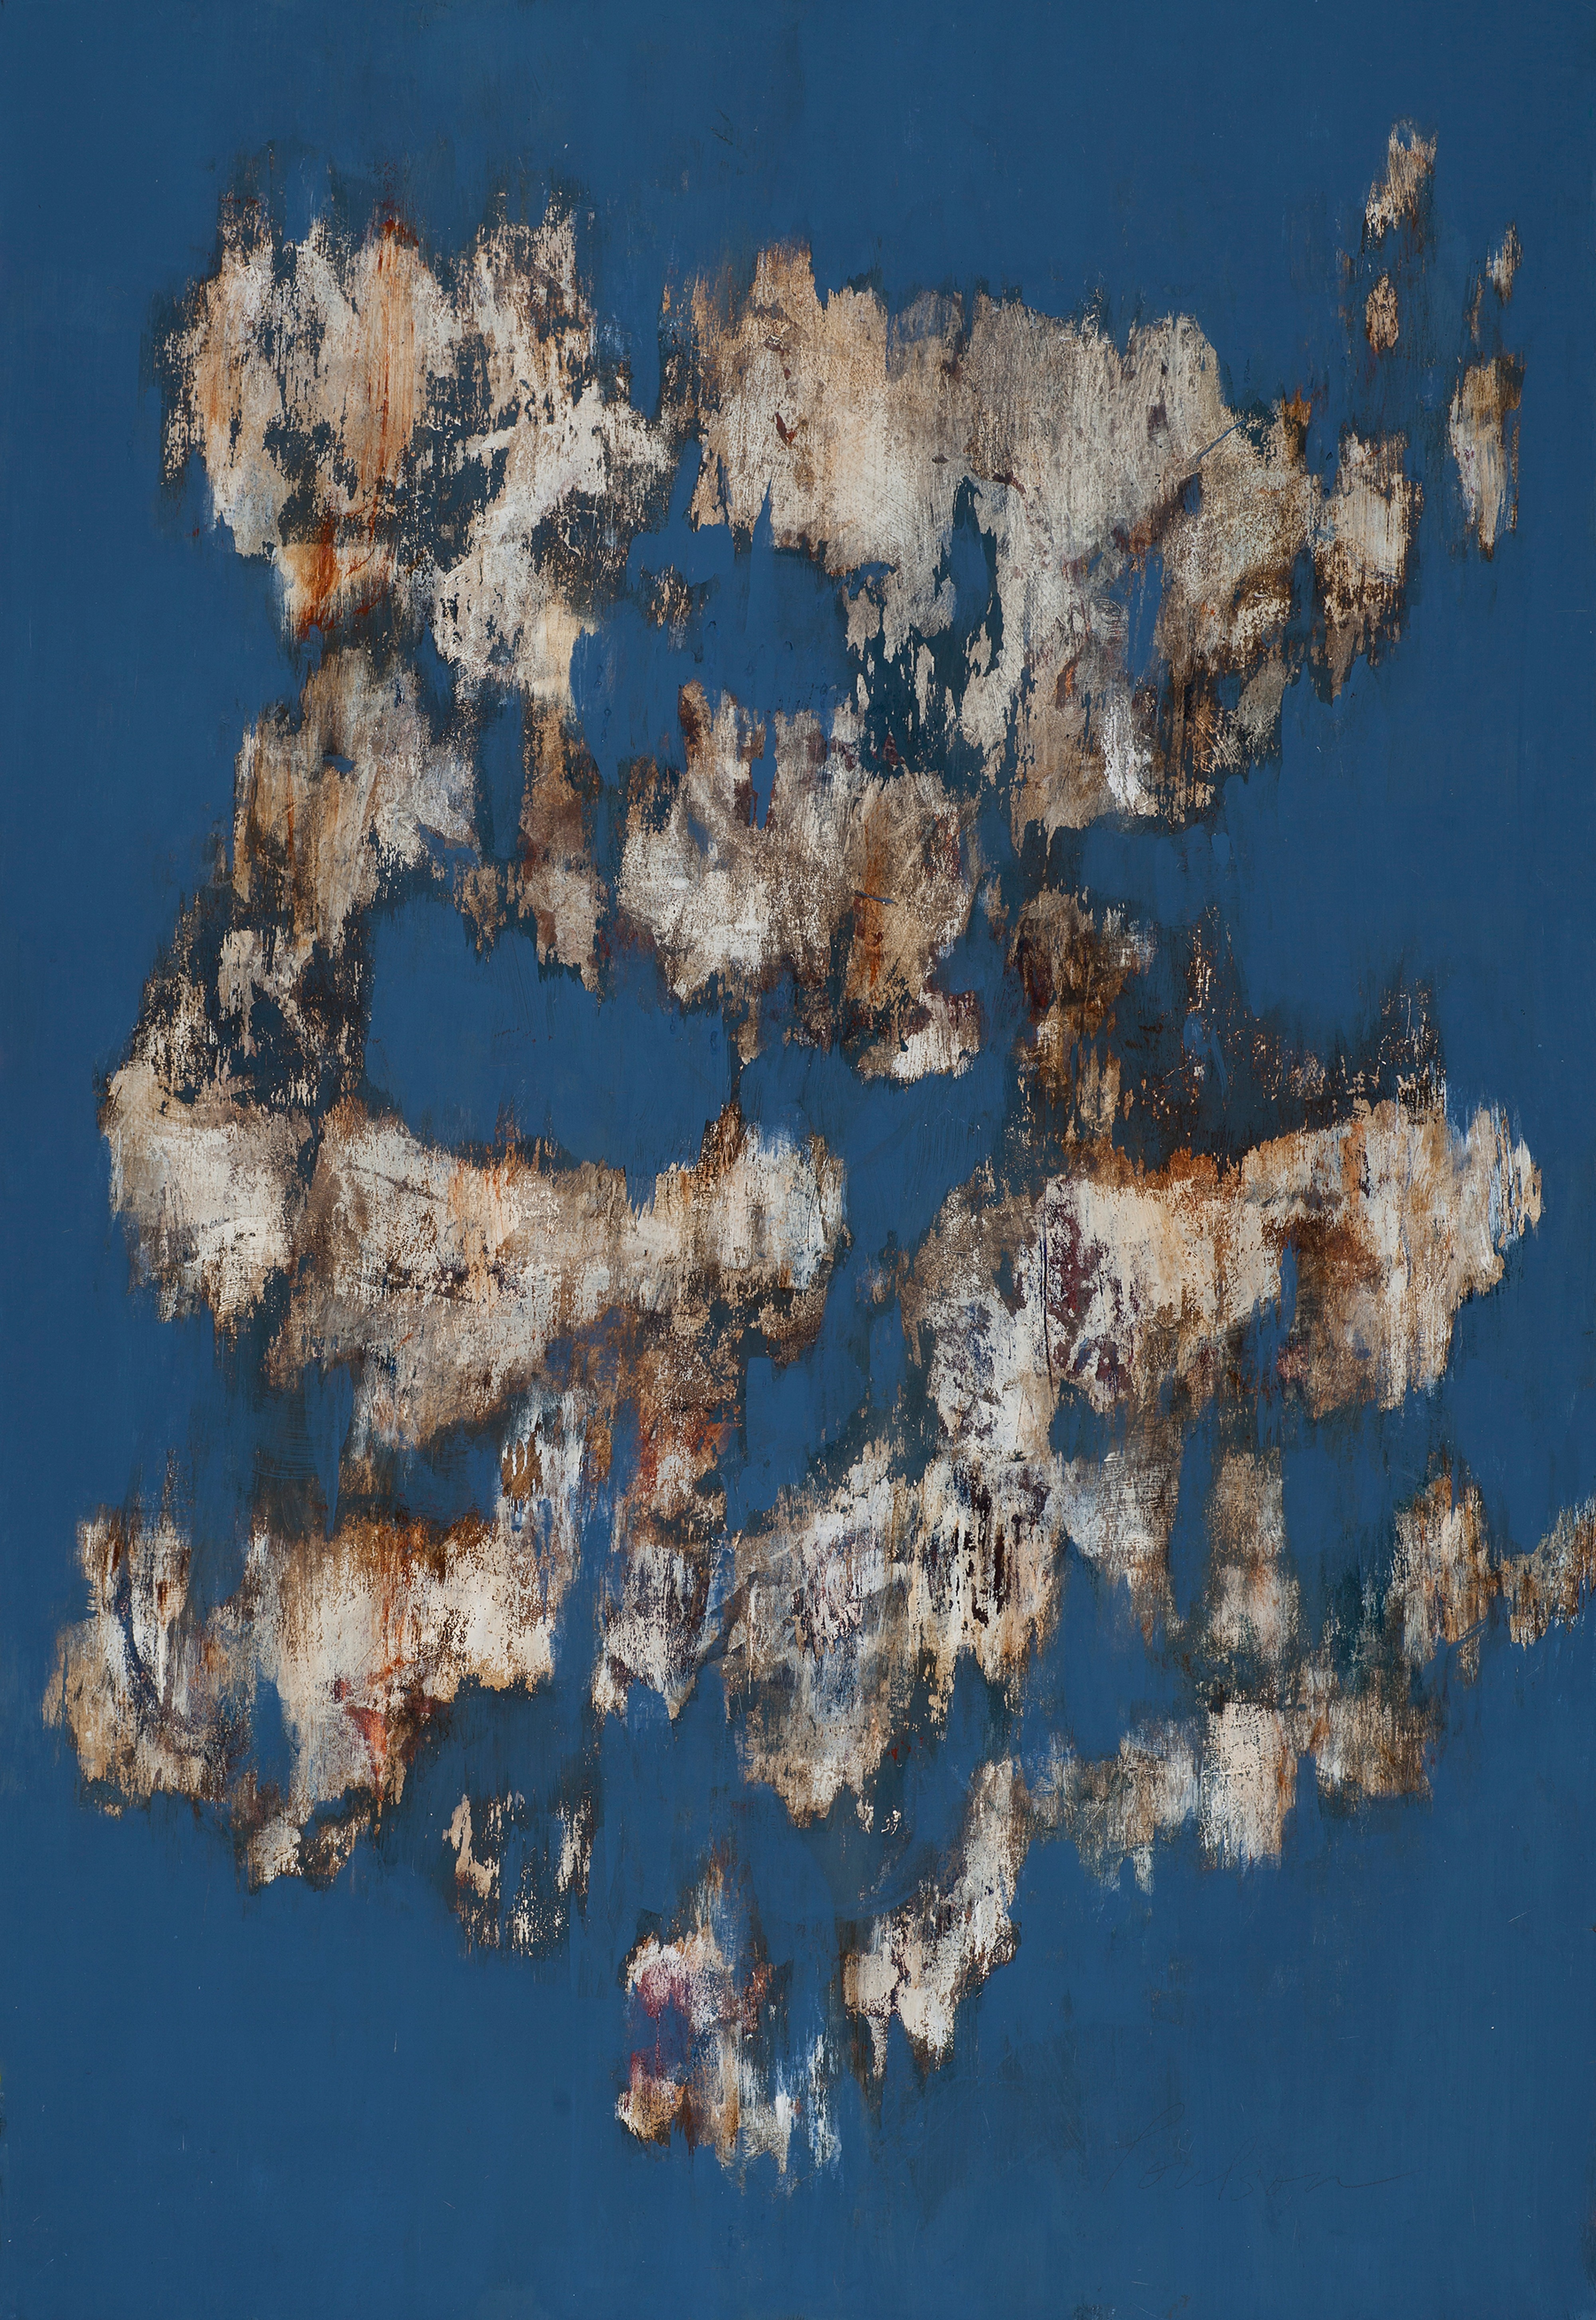 Fragment Series/Tapestry by Karen Poulson | ArtworkNetwork.com